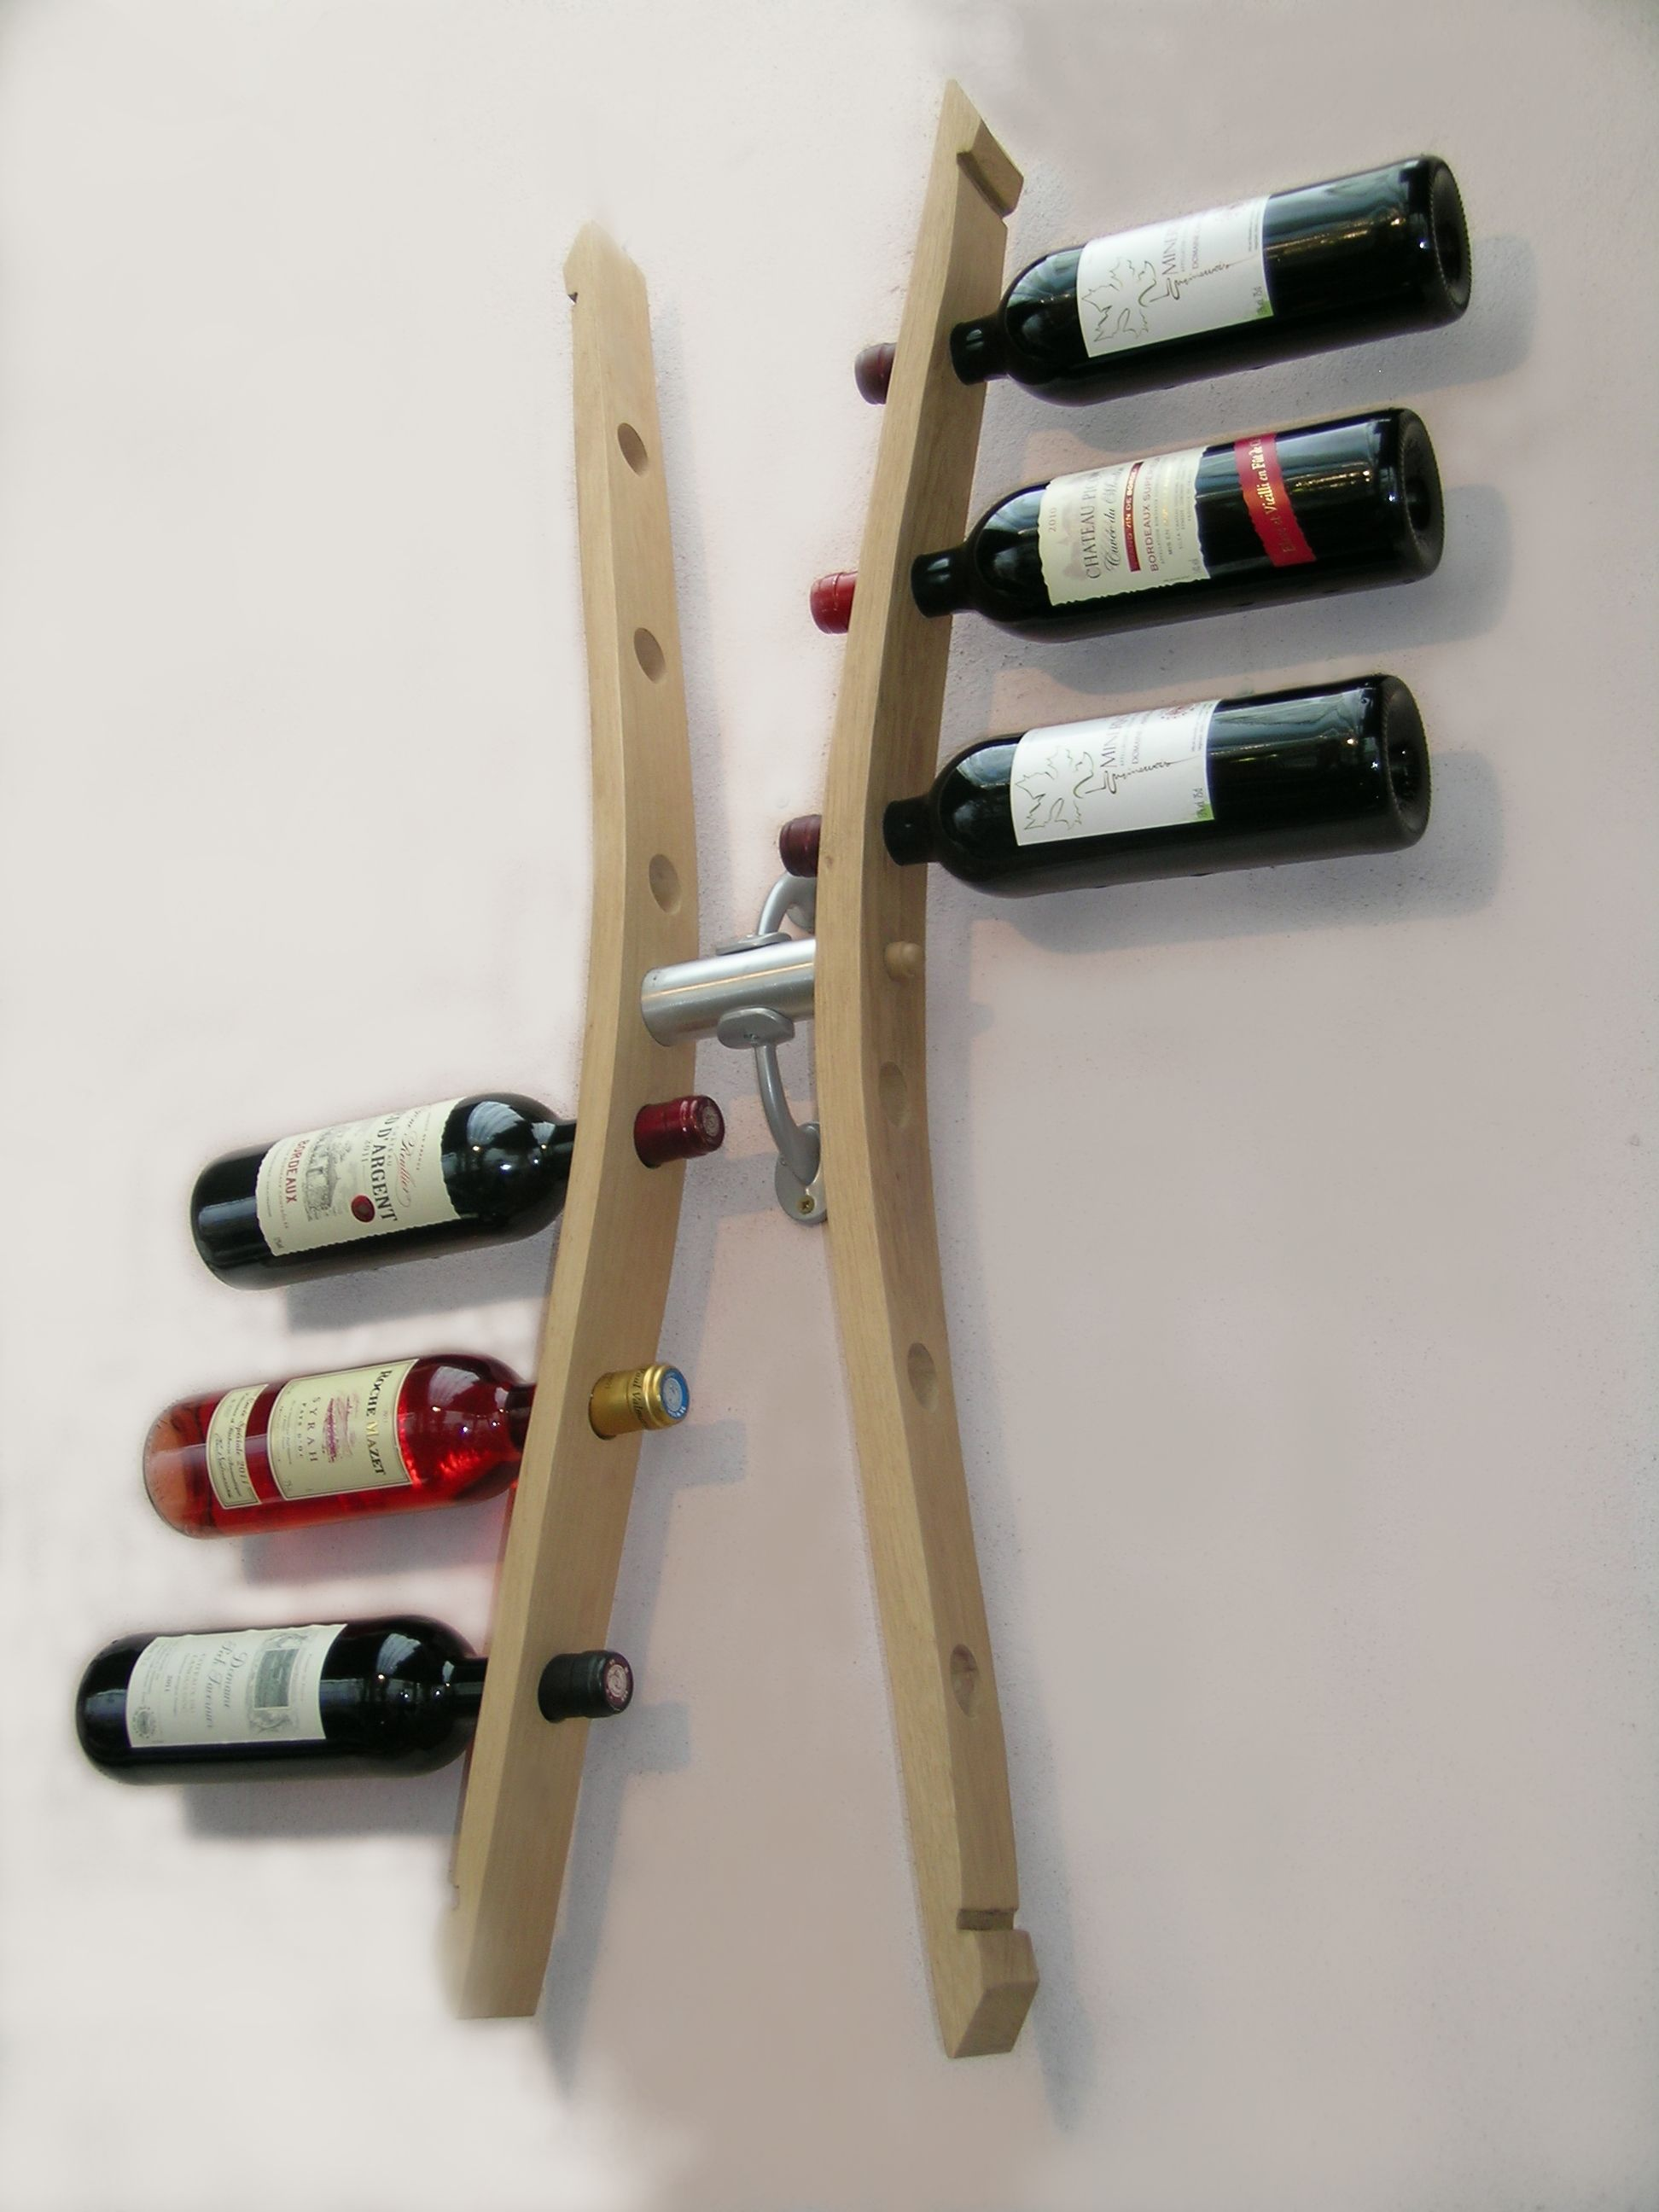 Support A Bouteille De Vin Mural support bouteilles mural stockage 12 bouteilles, create